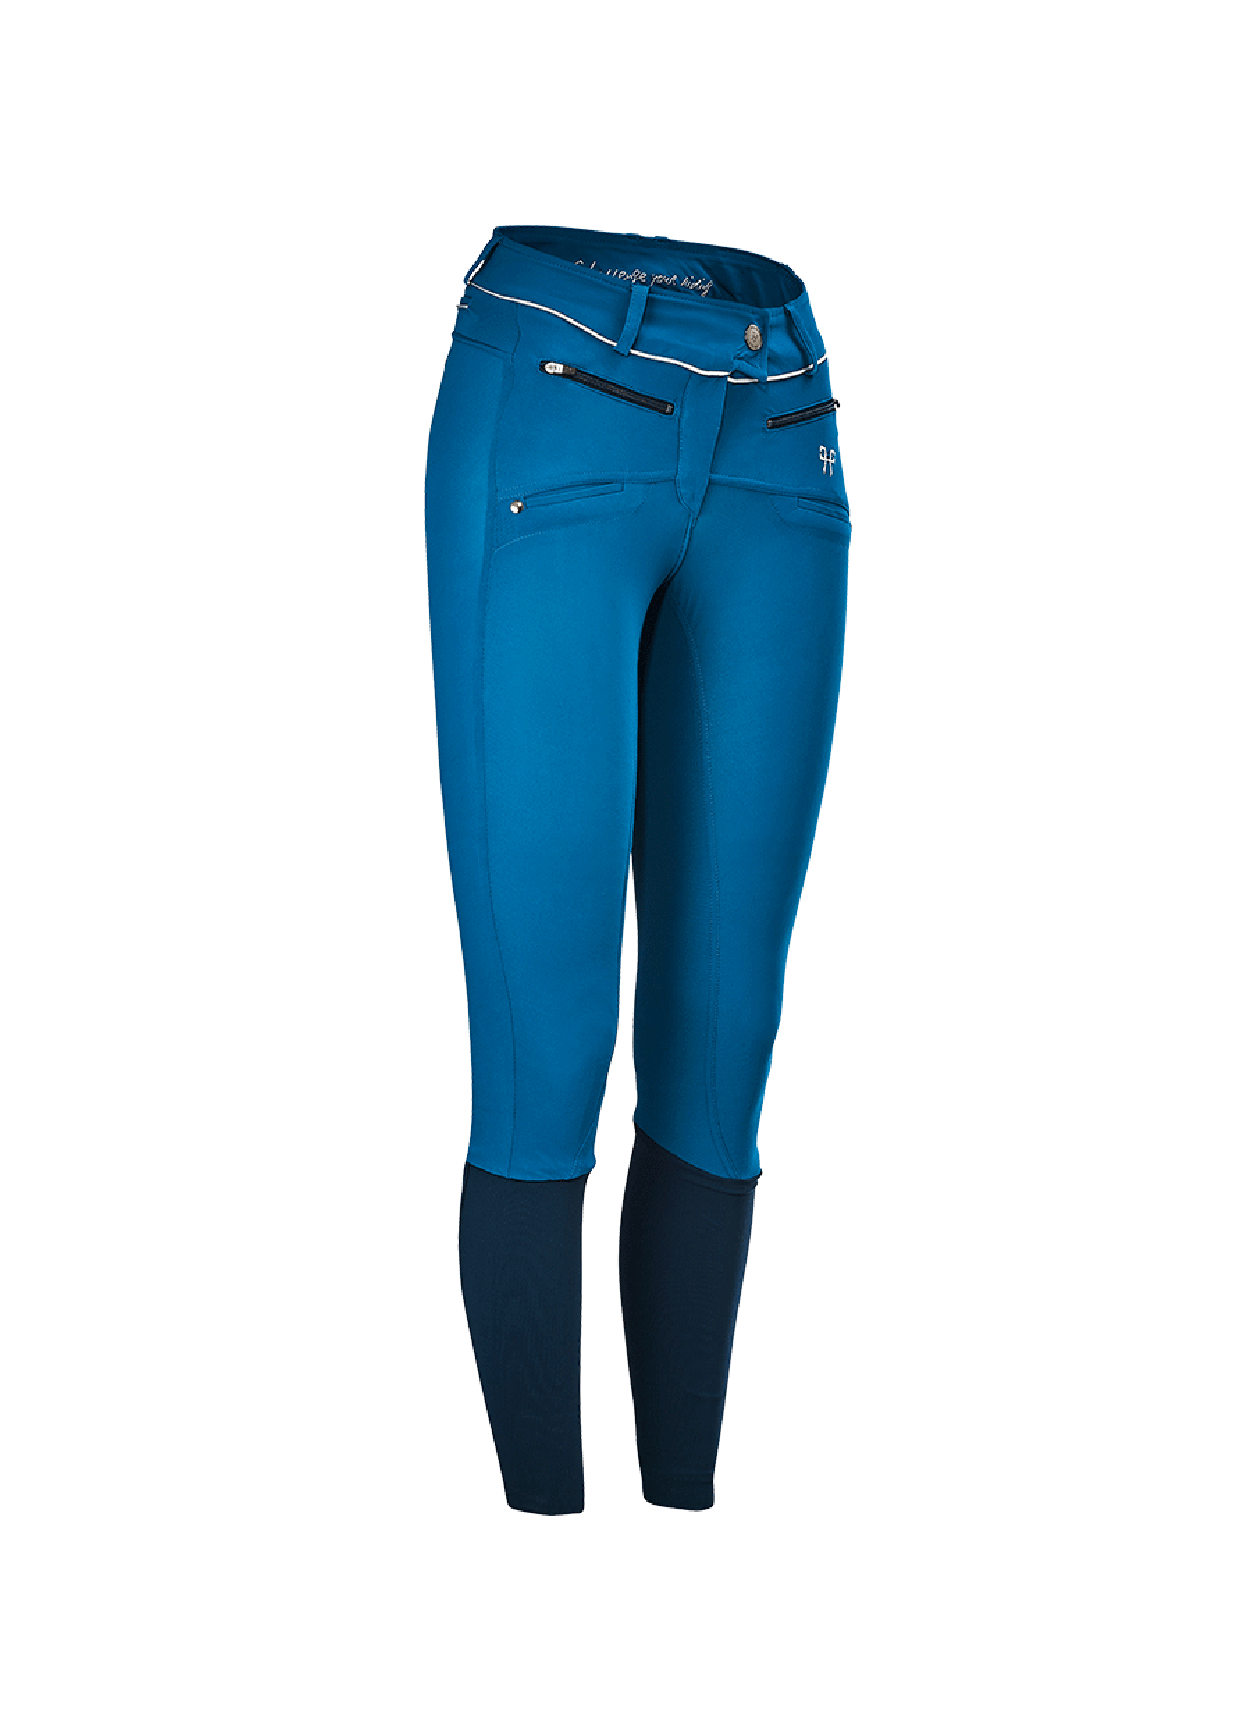 pantalon equitation